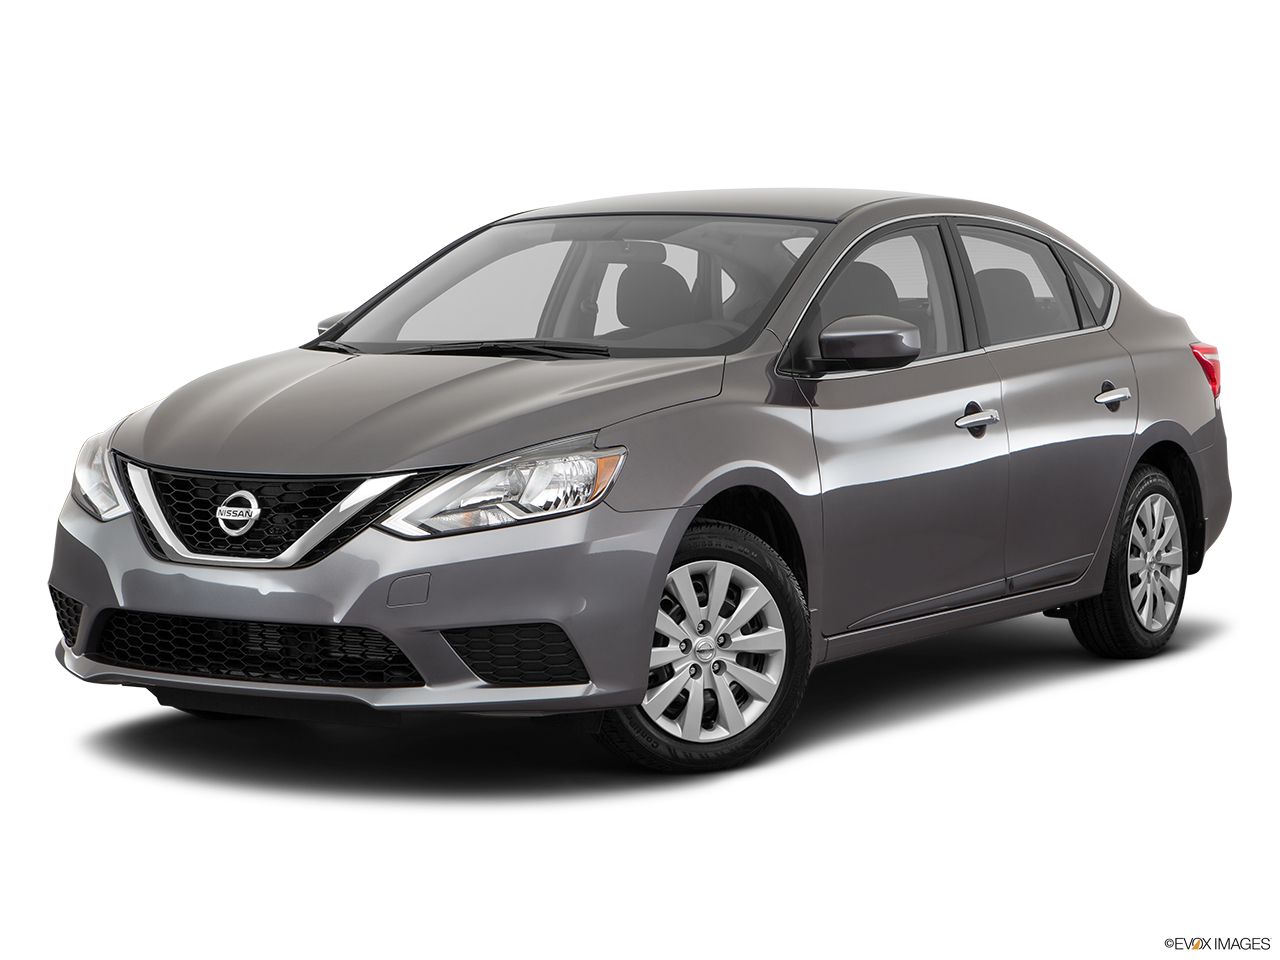 Test Drive A 2017 Nissan Sentra at Empire Nissan in Ontario